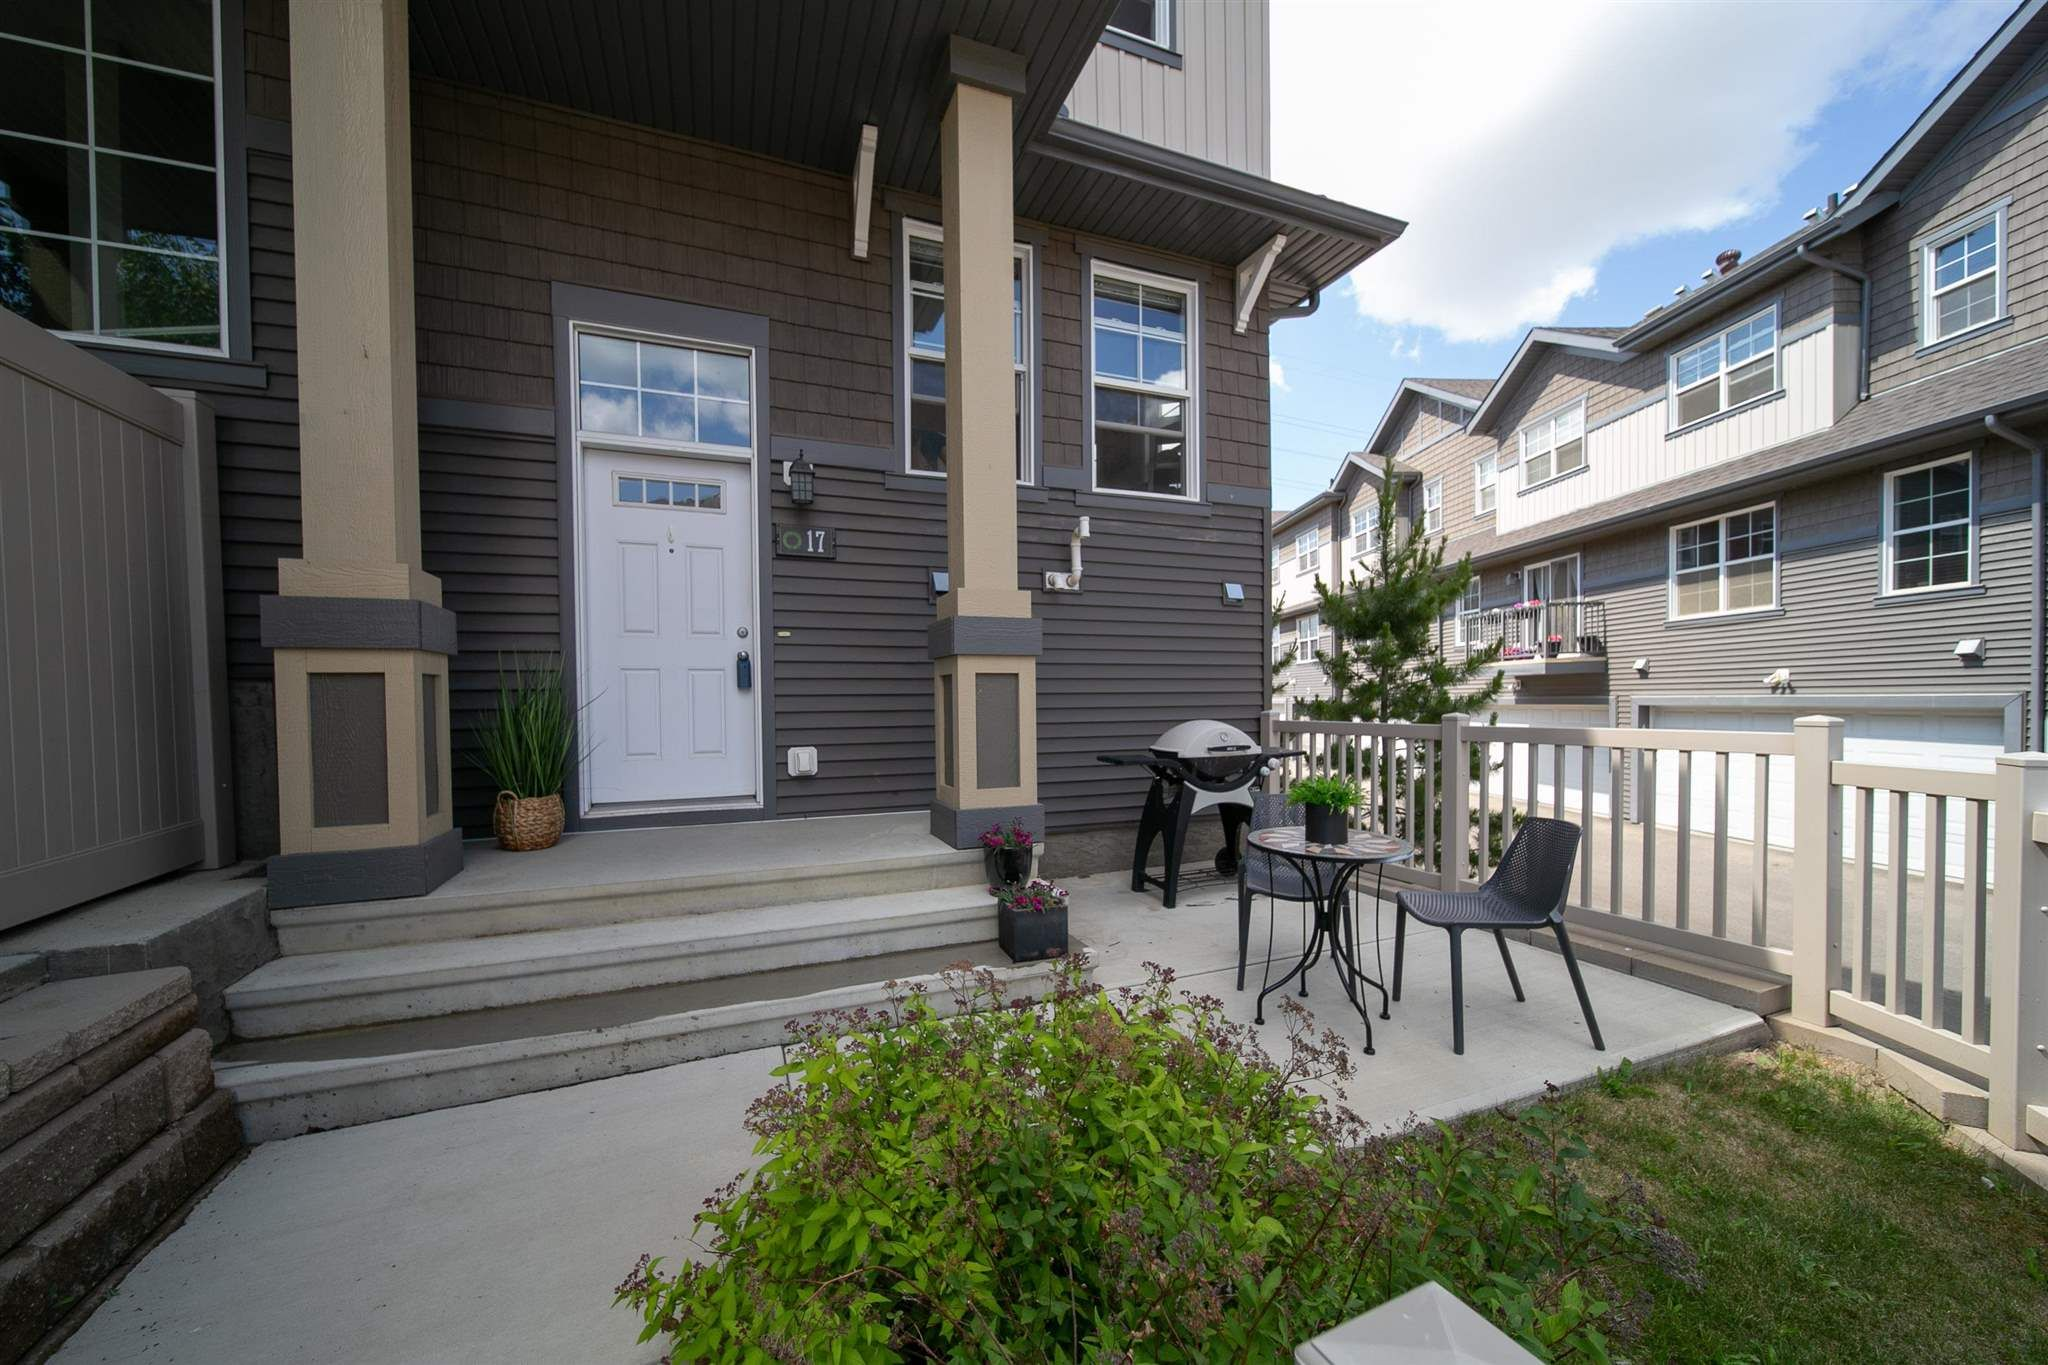 Main Photo: 17 4029 ORCHARDS Drive in Edmonton: Zone 53 Townhouse for sale : MLS®# E4251652